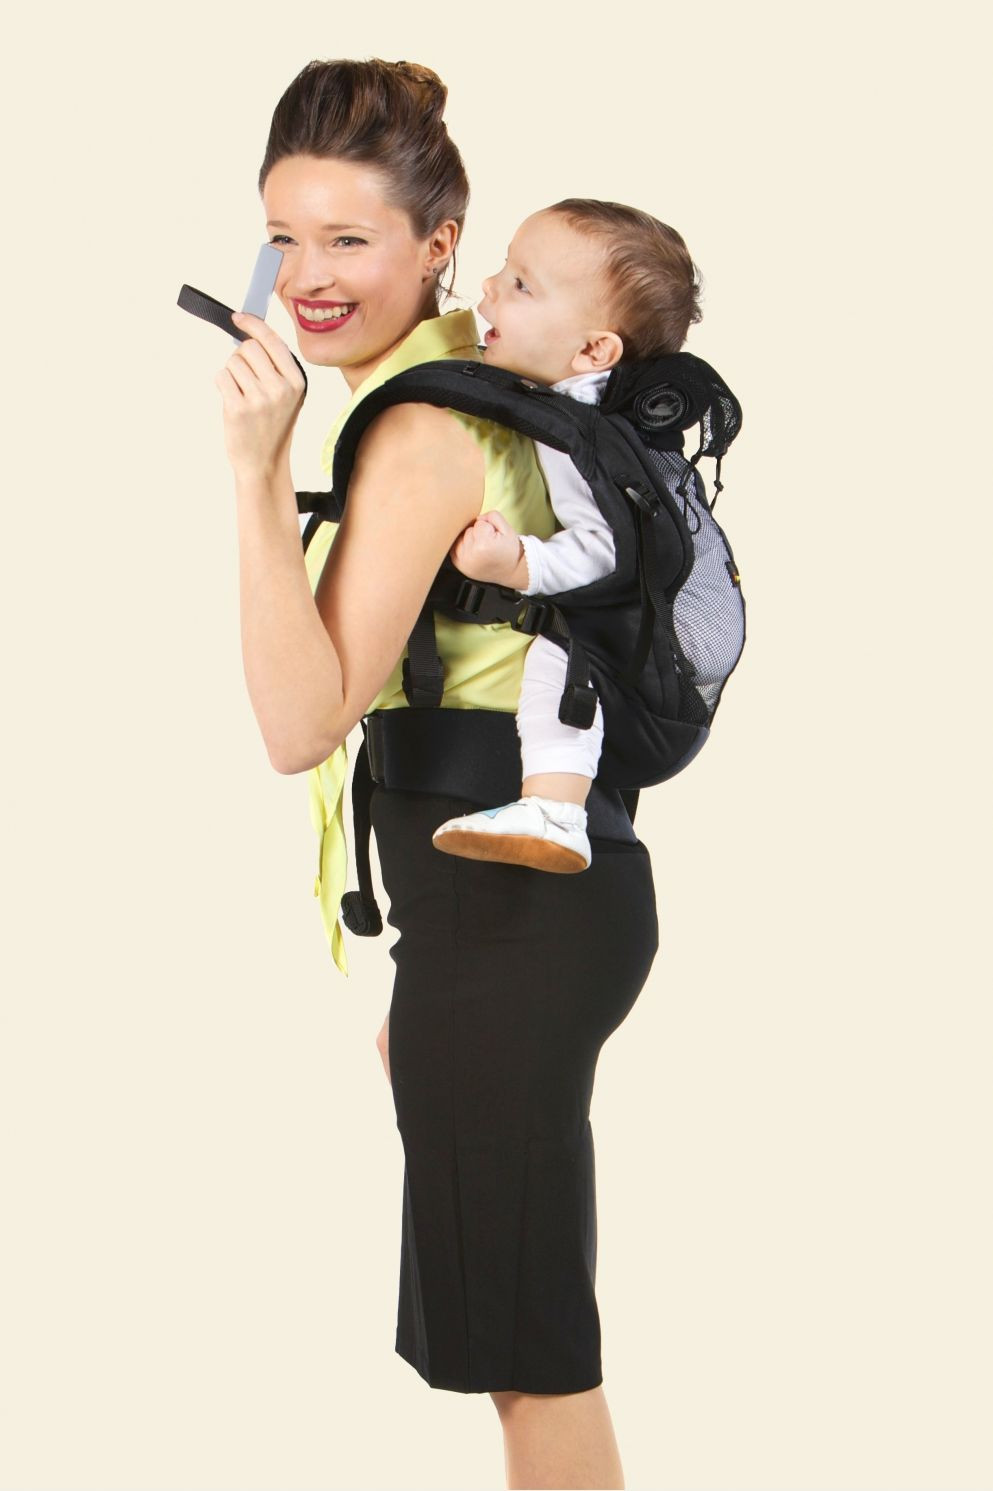 Portebébé PhysioCarrier JPMBB Avis - Porte bebe physiocarrier